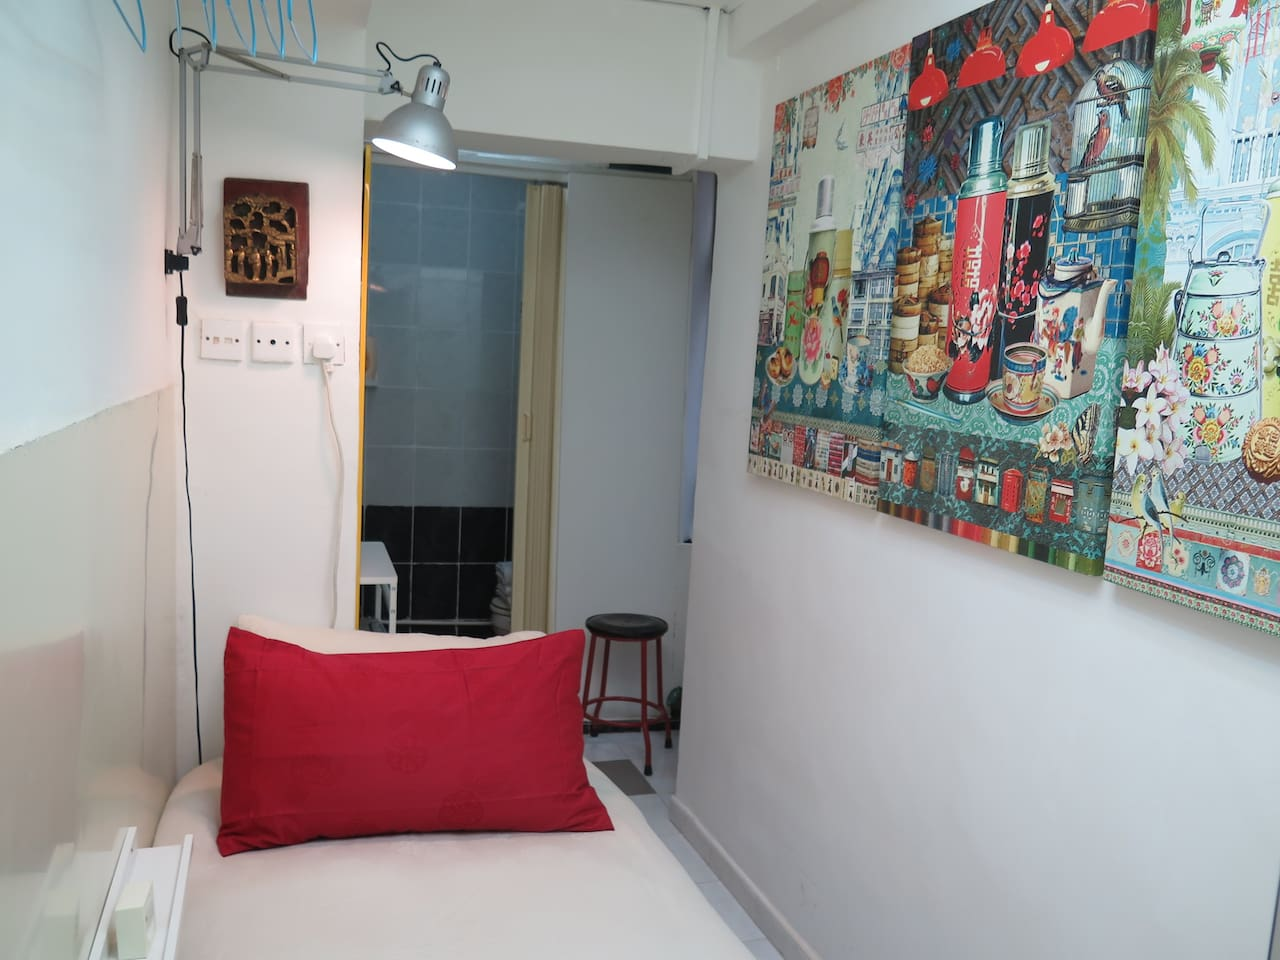 Compact but comfortable and clean space for short term travelers. PRIVATE STUDIO